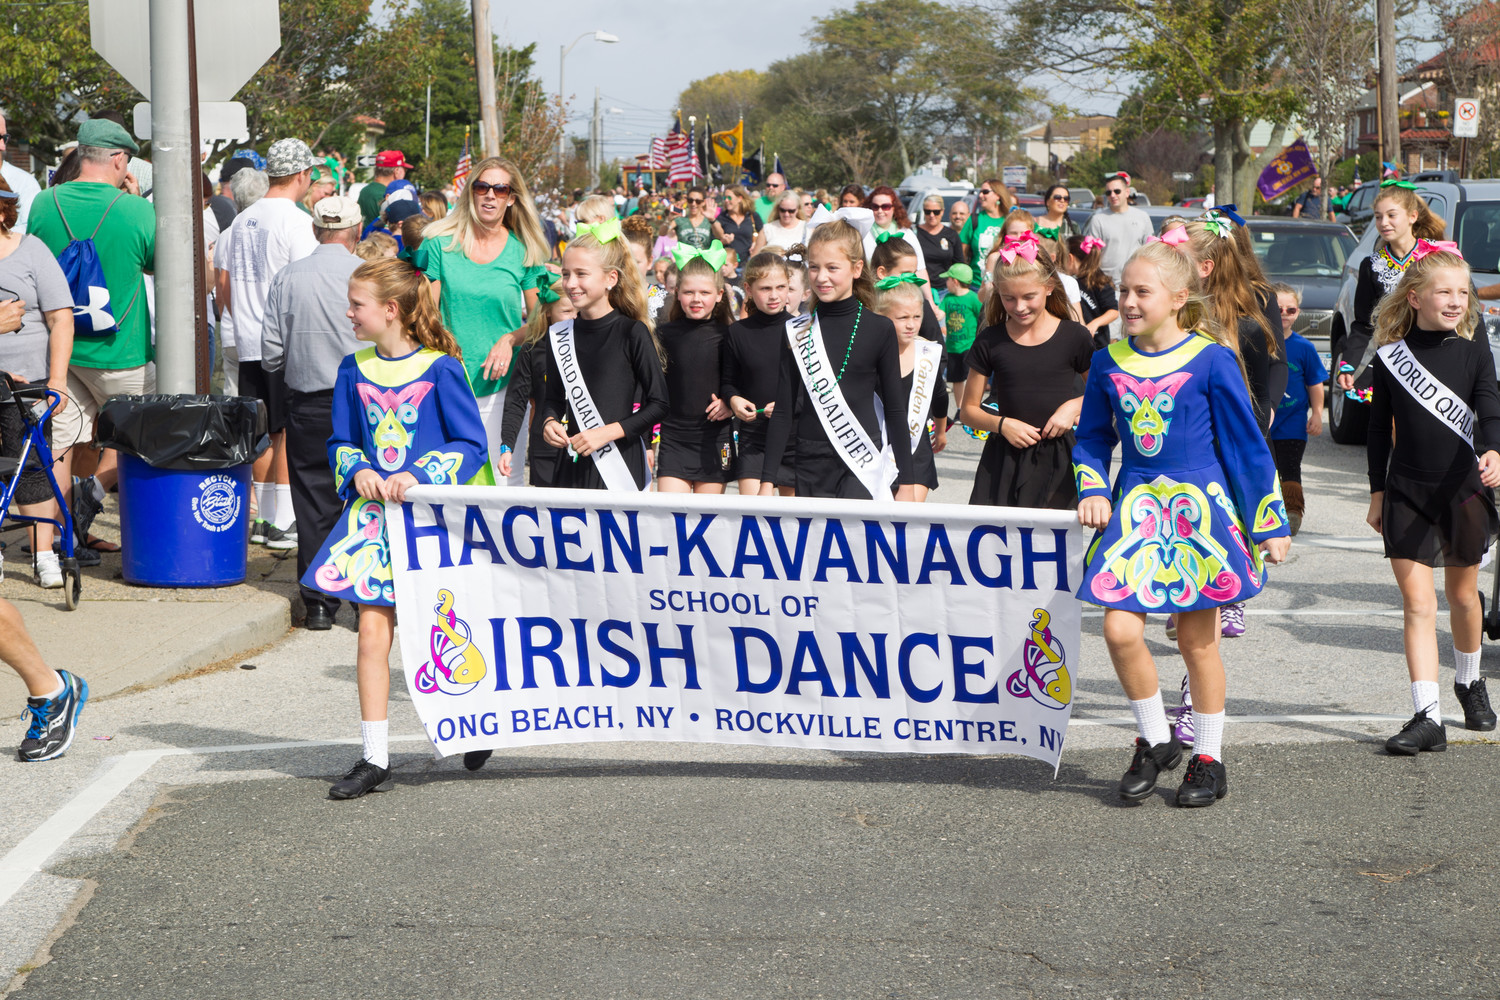 Dancers from the Hagen-Kavanagh School of Irish Dance marched along West Beech Street for the parade.